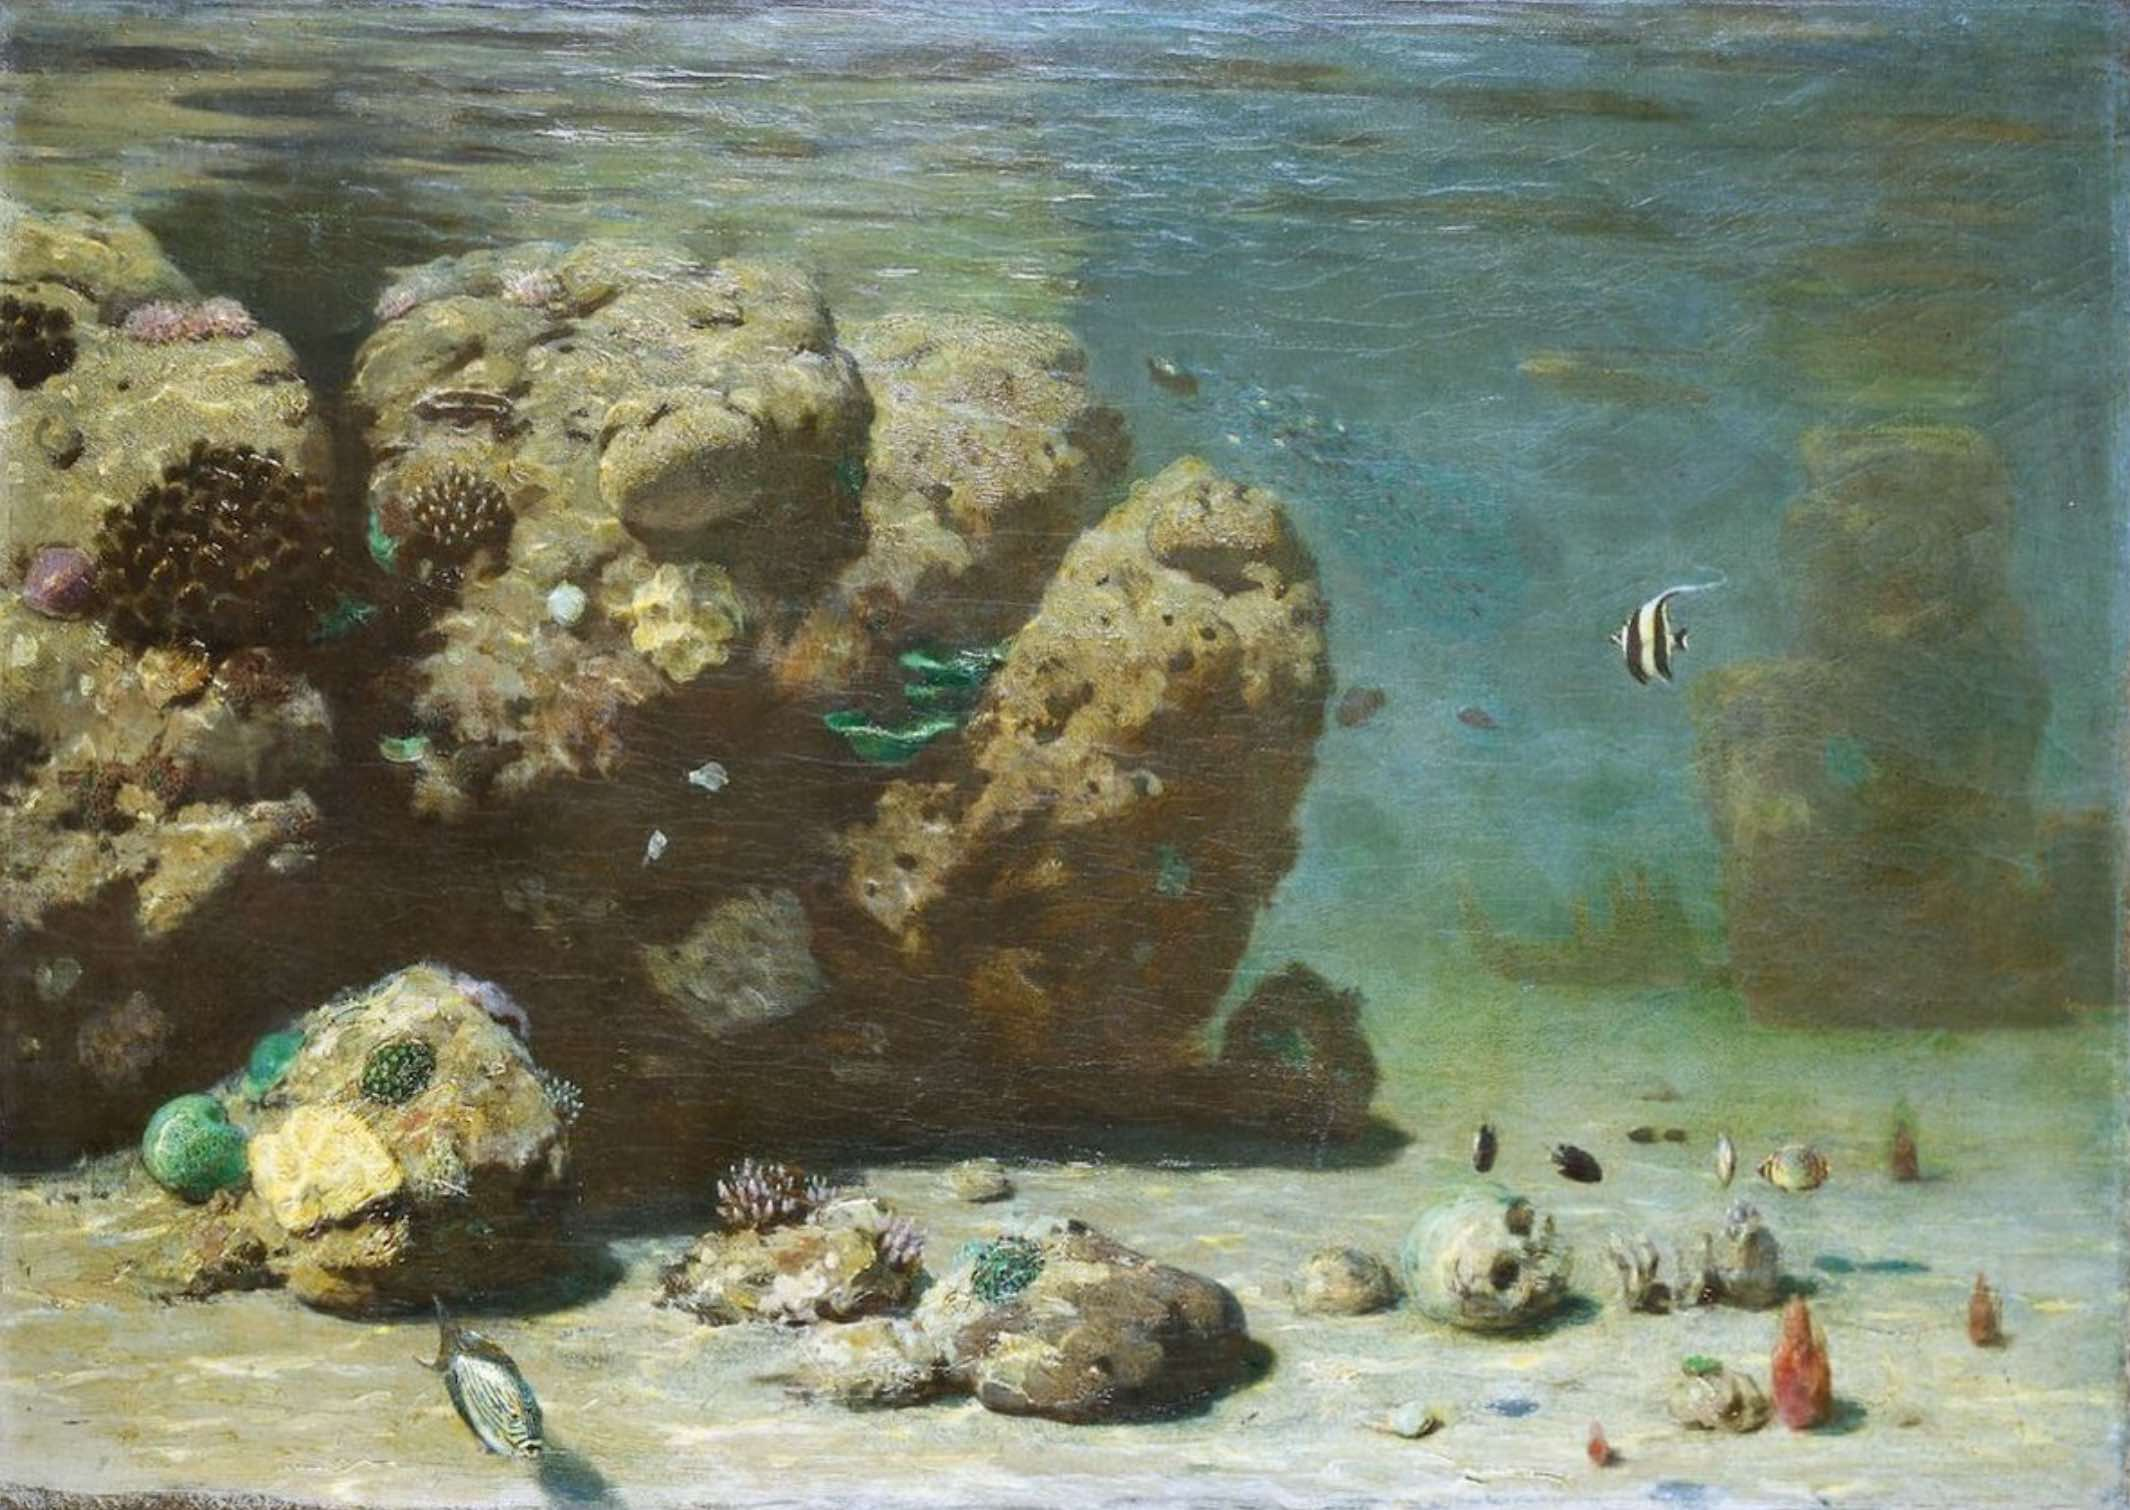 Stunning underwater scenes drawn by hand in an 1860s submersible